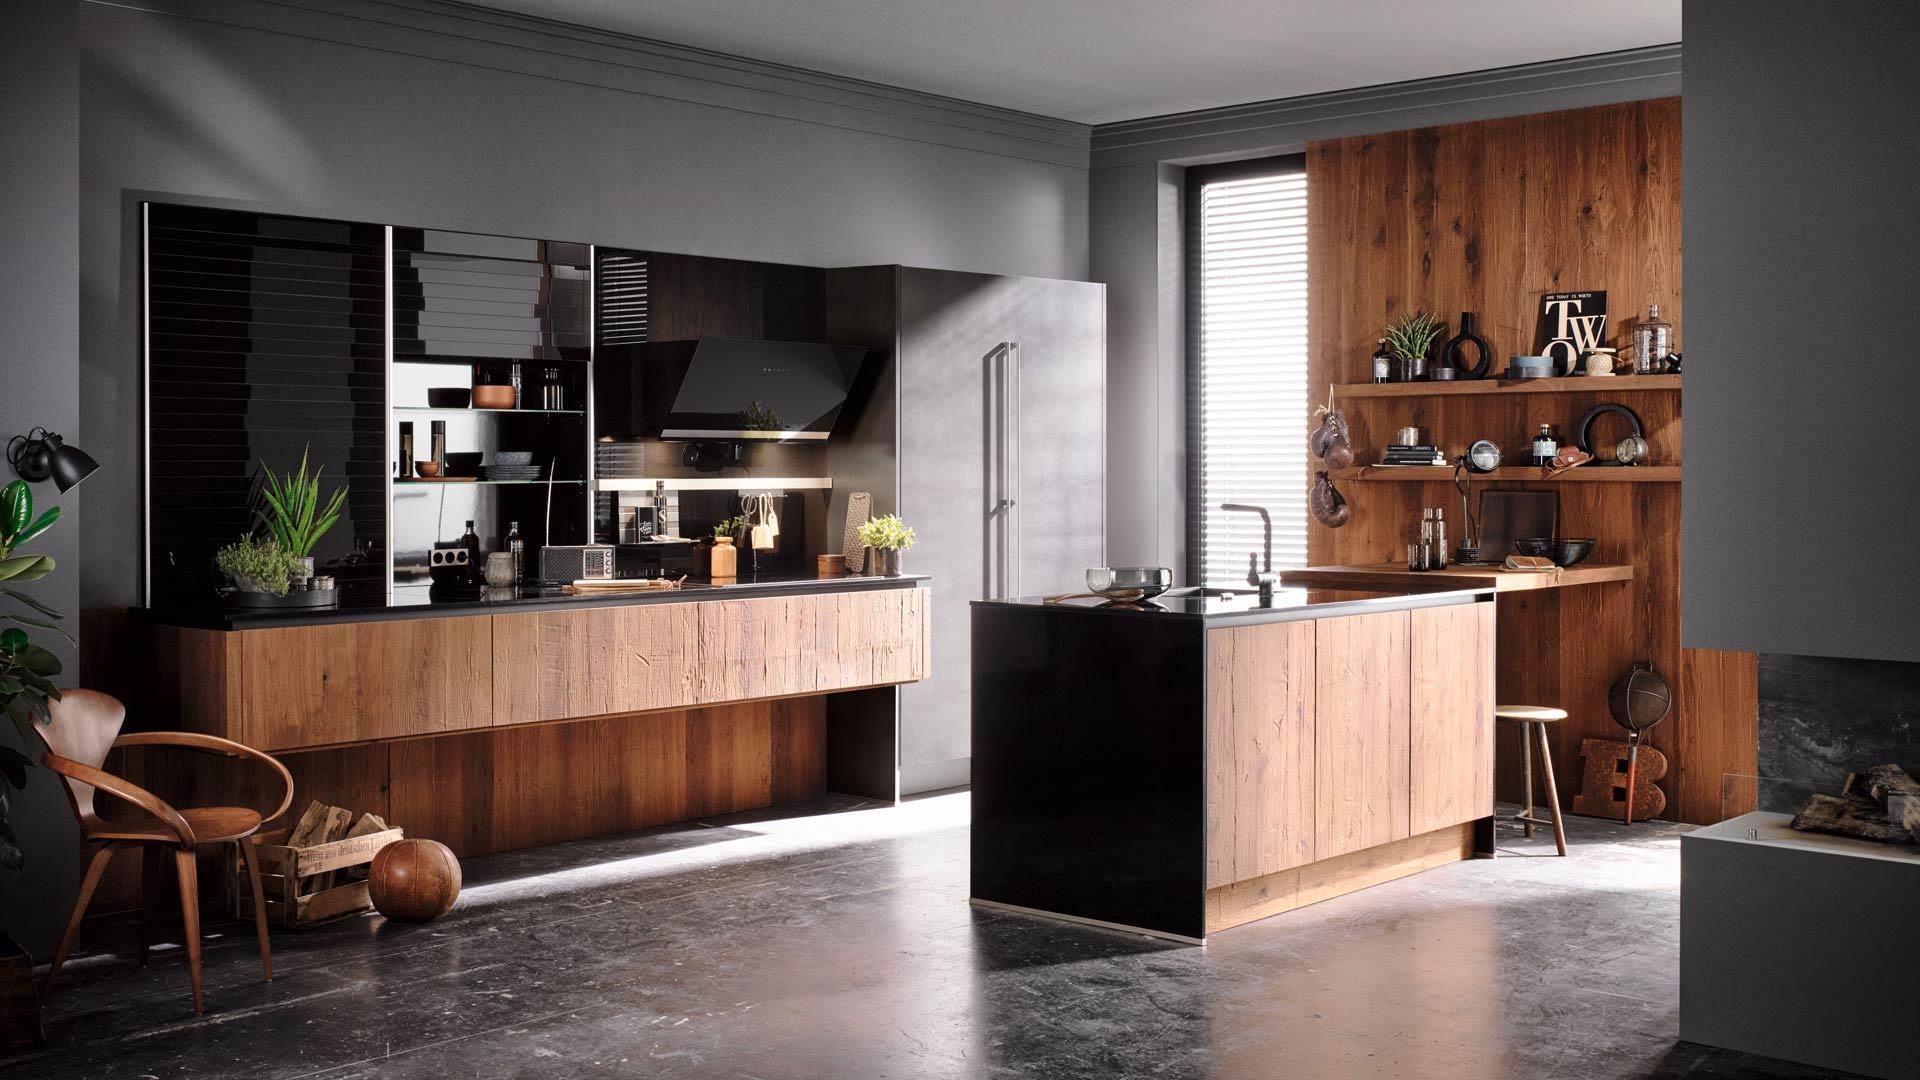 Full Size of Miele Küche Grand Gourmet Miele Küche Gourmet International Miele Küche Wave Miele Küche Oelde Küche Miele Küche